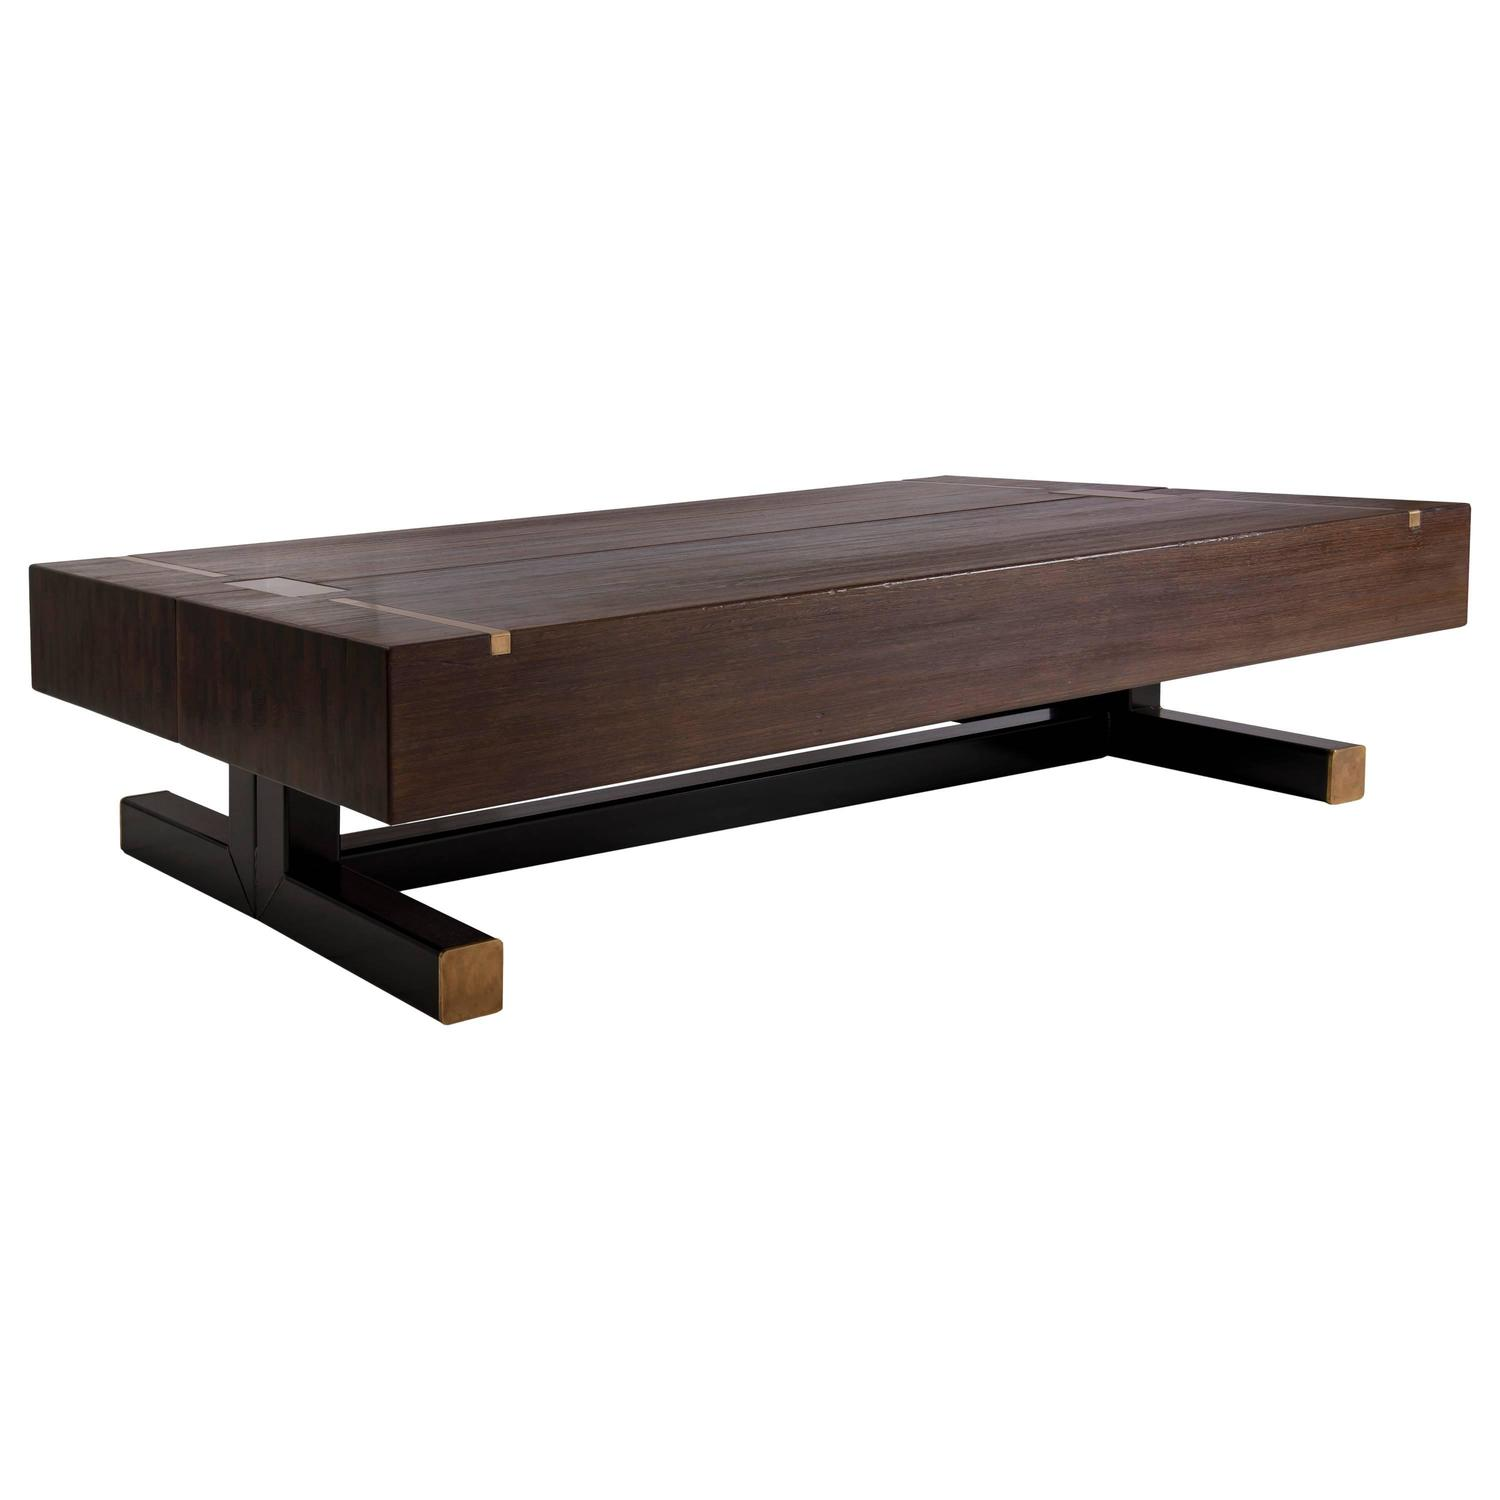 Contemporary Coffee Table Original J Wabbes 1960 39 S Wenge End Grain Wood Top For Sale At 1stdibs